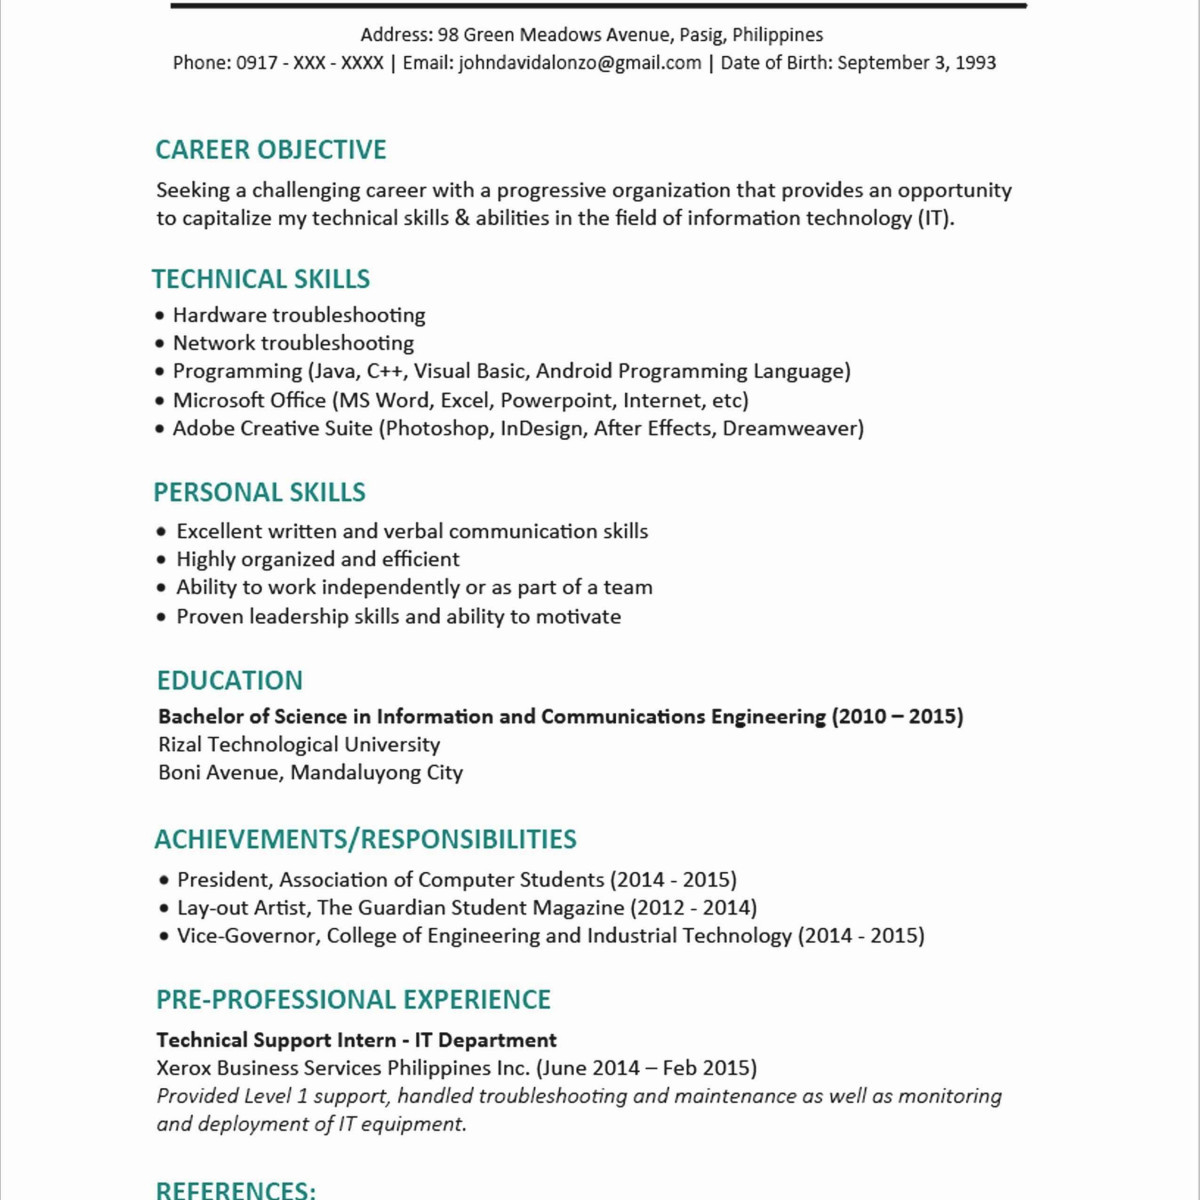 high school scholarship resume template example-scholarship resume beautiful resume templates elegant scholarship resume example 2018 fresh resume for highschool students excellent resumes 0d resume 5-e